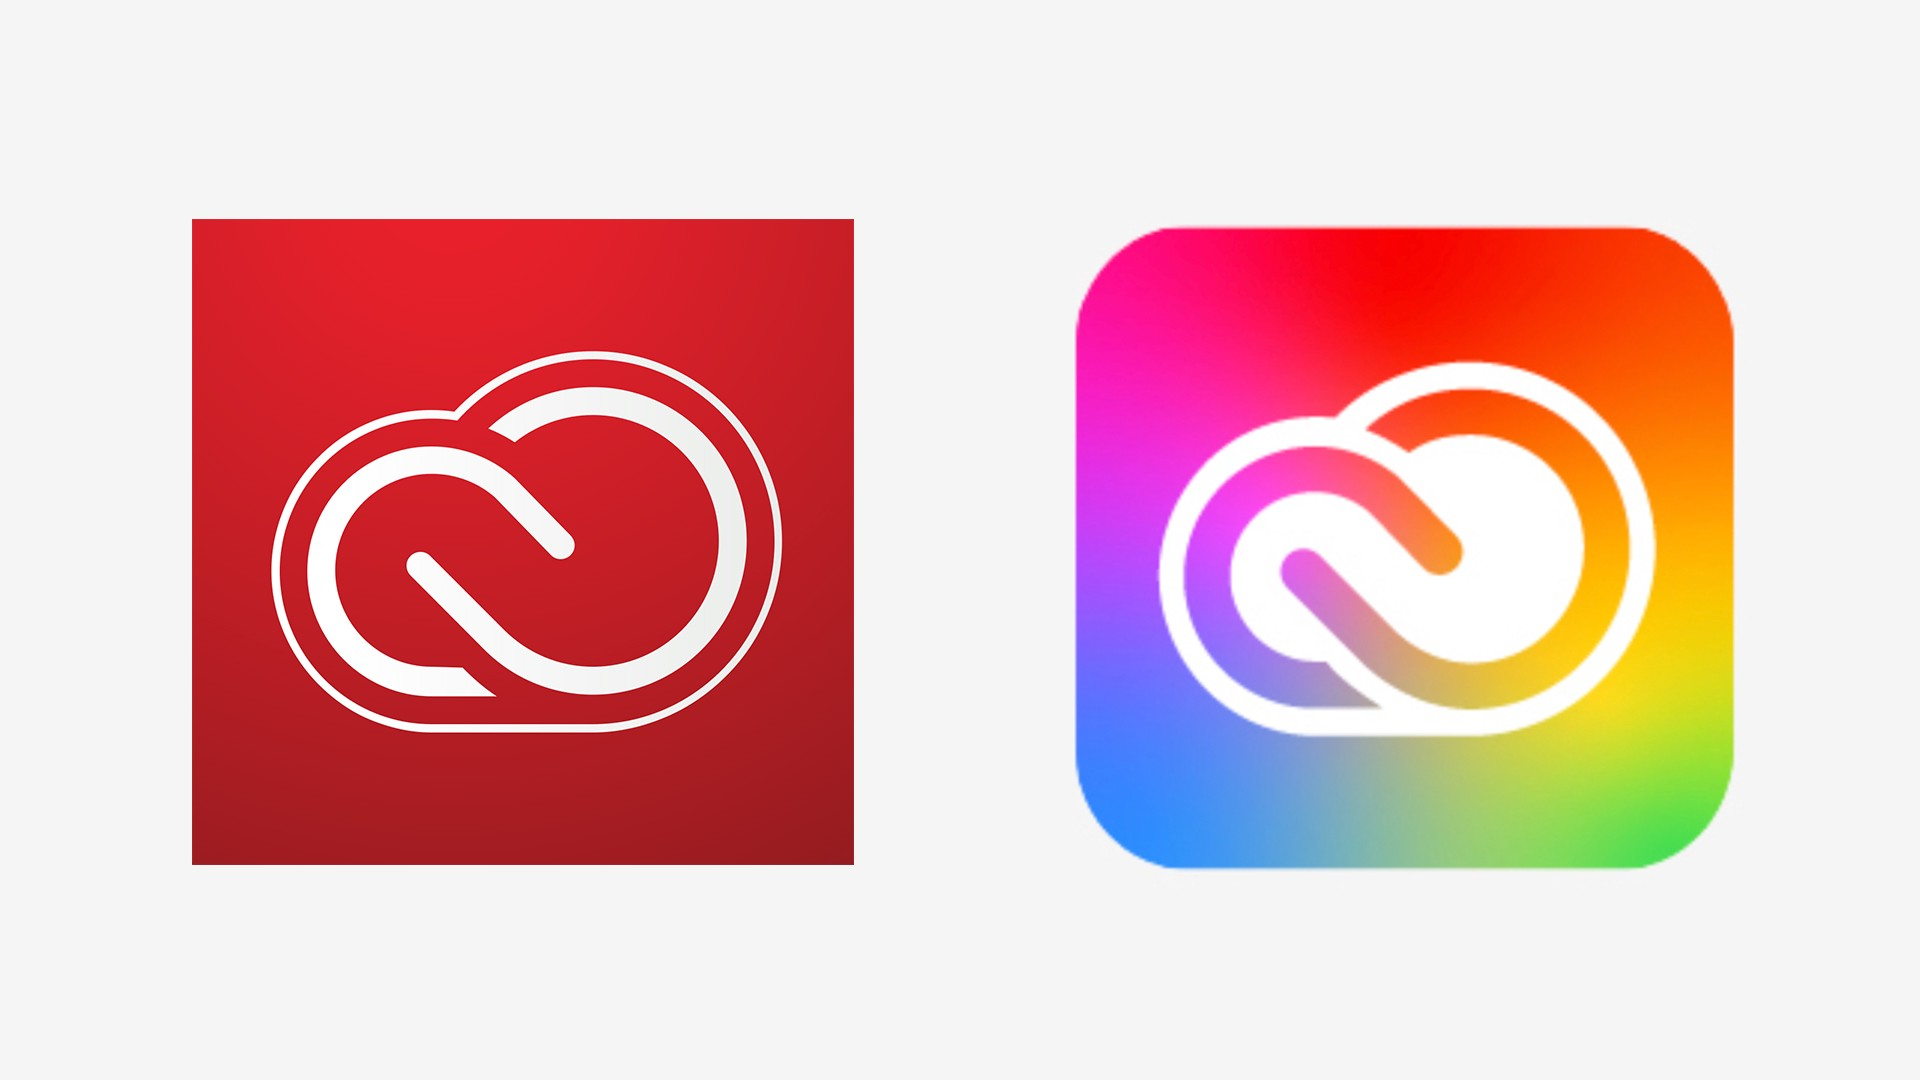 Old two-toned Adobe Creative Cloud logo on the left, with colorful updated version on the right.